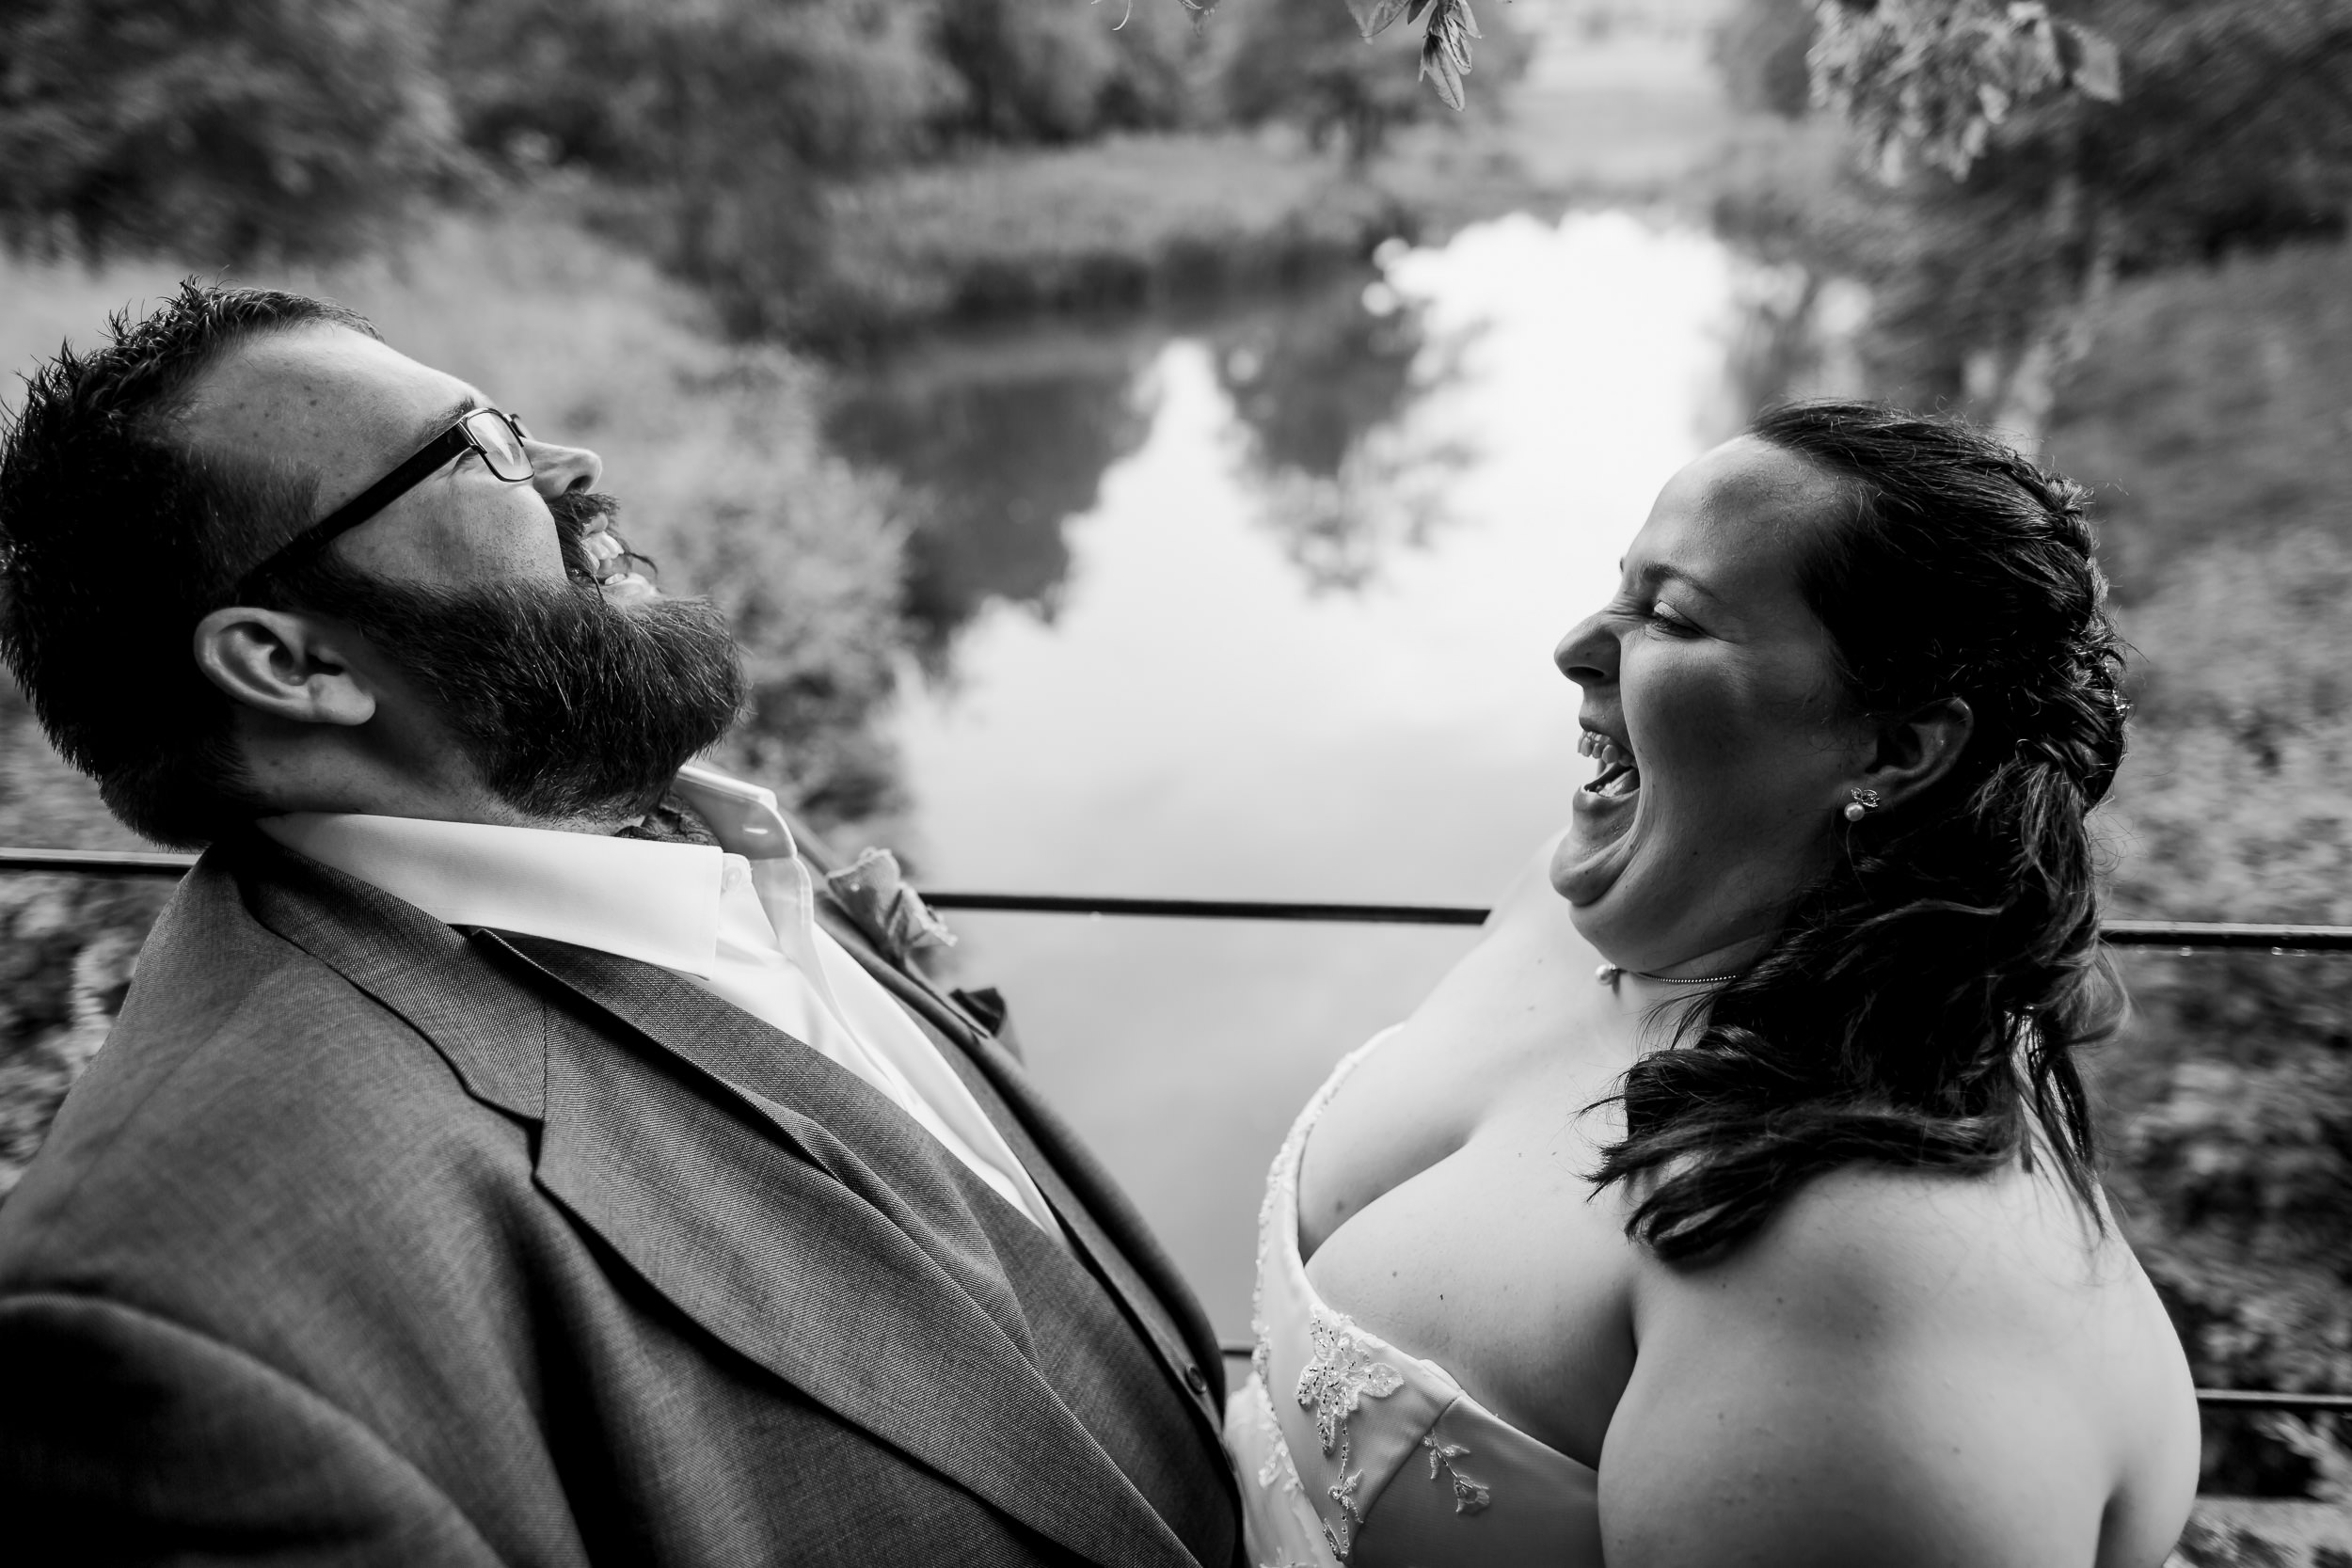 Bride and groom laughing on their wedding day - weddings at YSP - Yorkshire Sculpture Park weddings